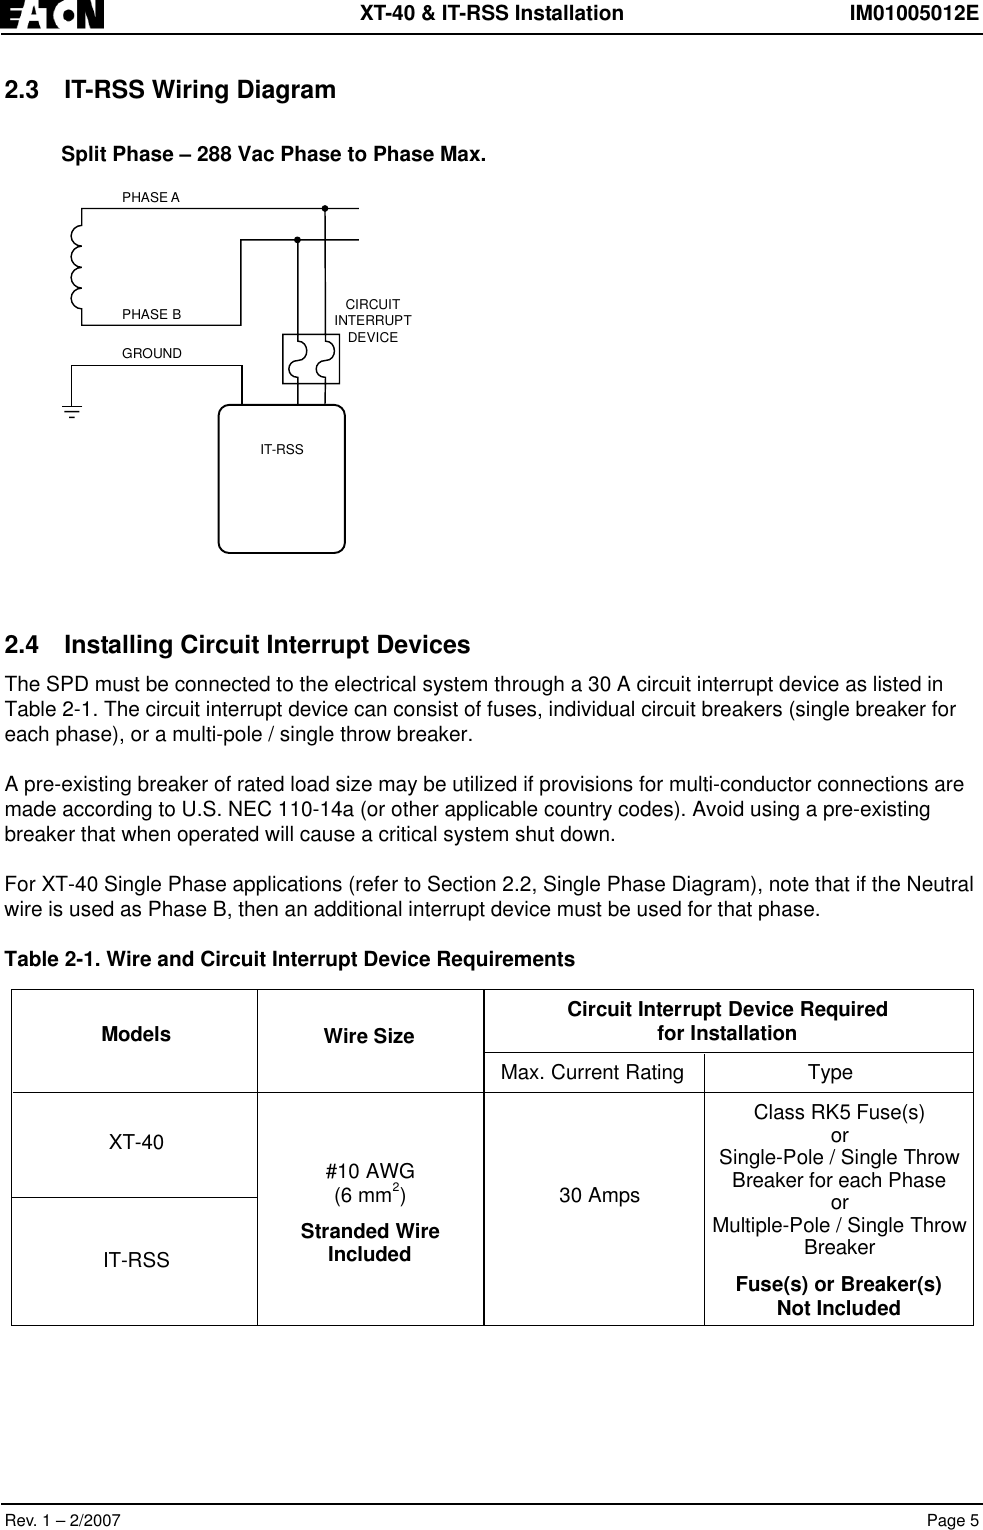 Eaton Electrical Im01005012e Users Manual 2 Single Pole Breaker Wiring Diagram Page 7 Of 12